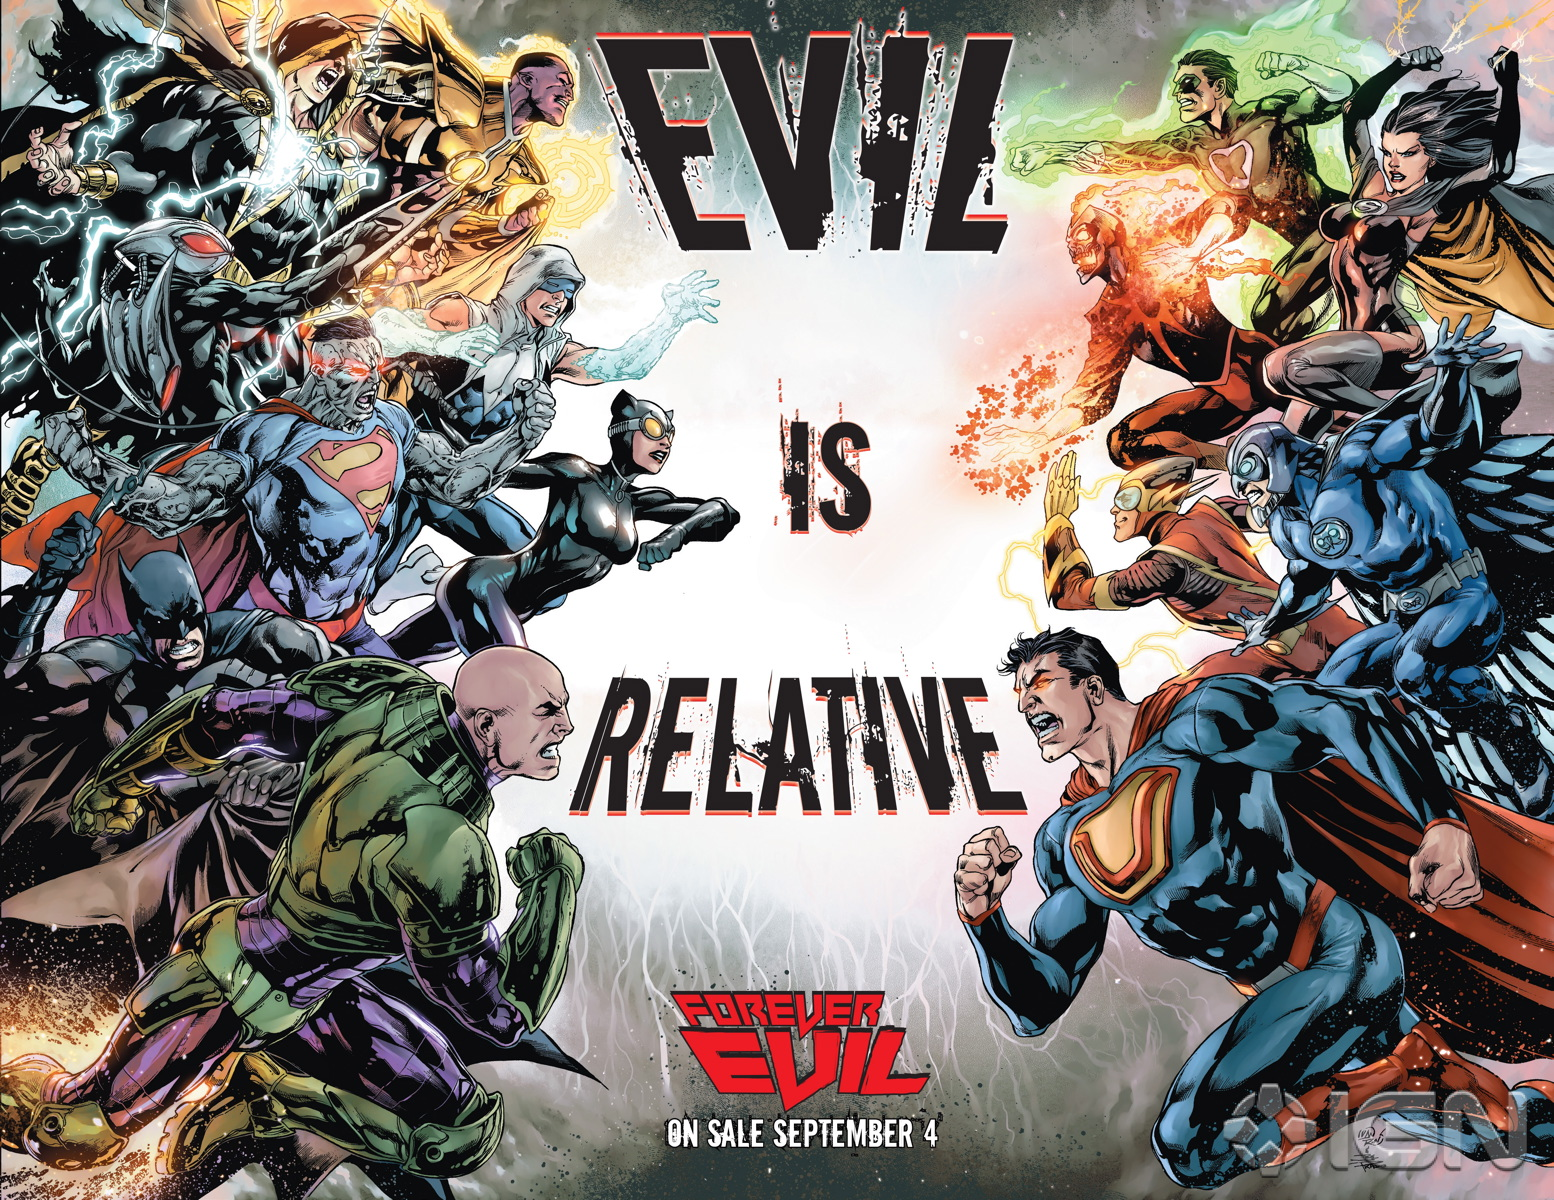 Forever Evil by Geoff Johns and David Finch